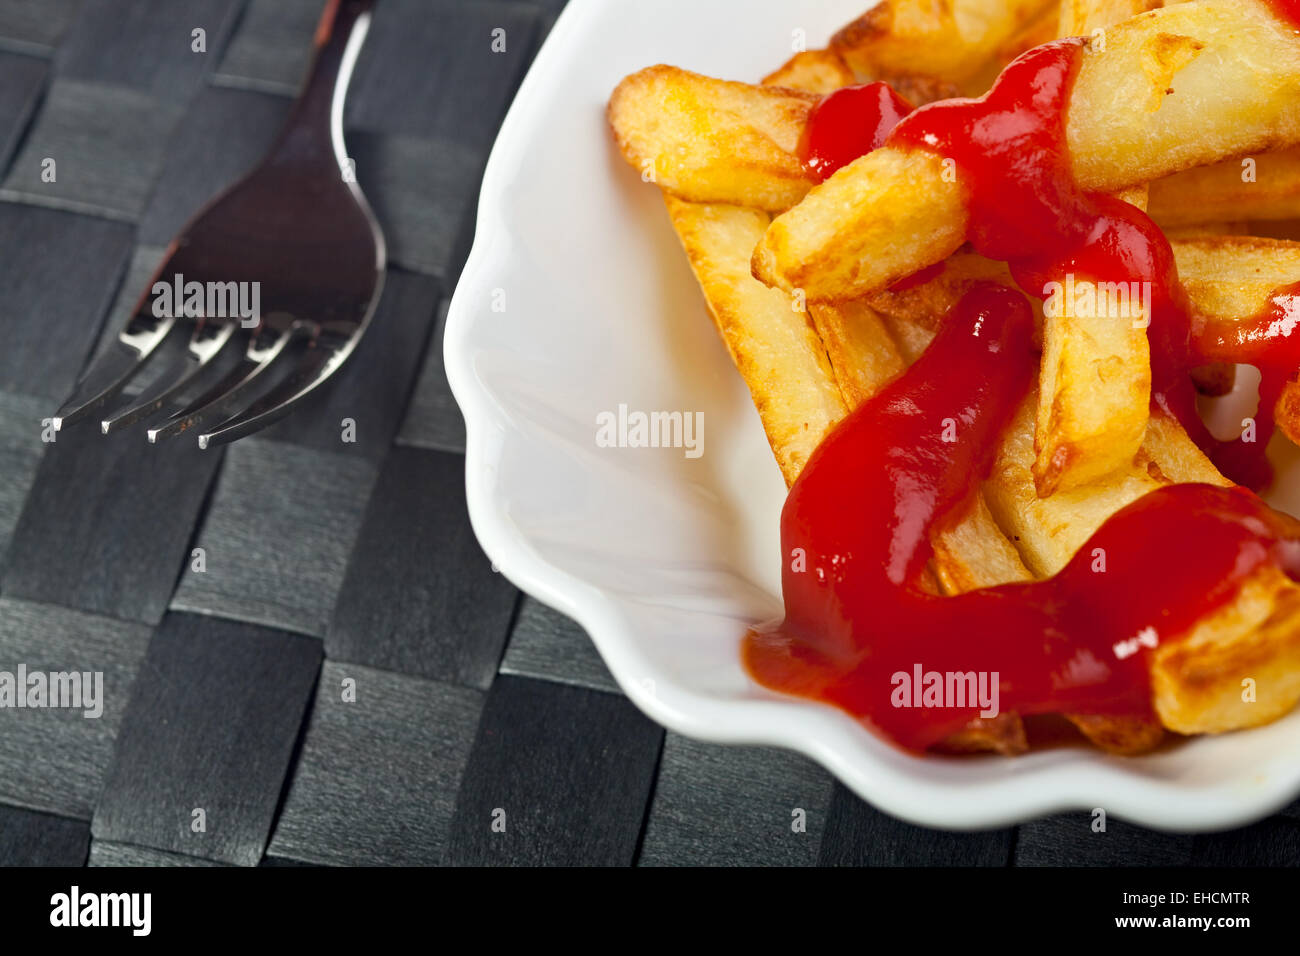 french fries on a typical plate - Stock Image